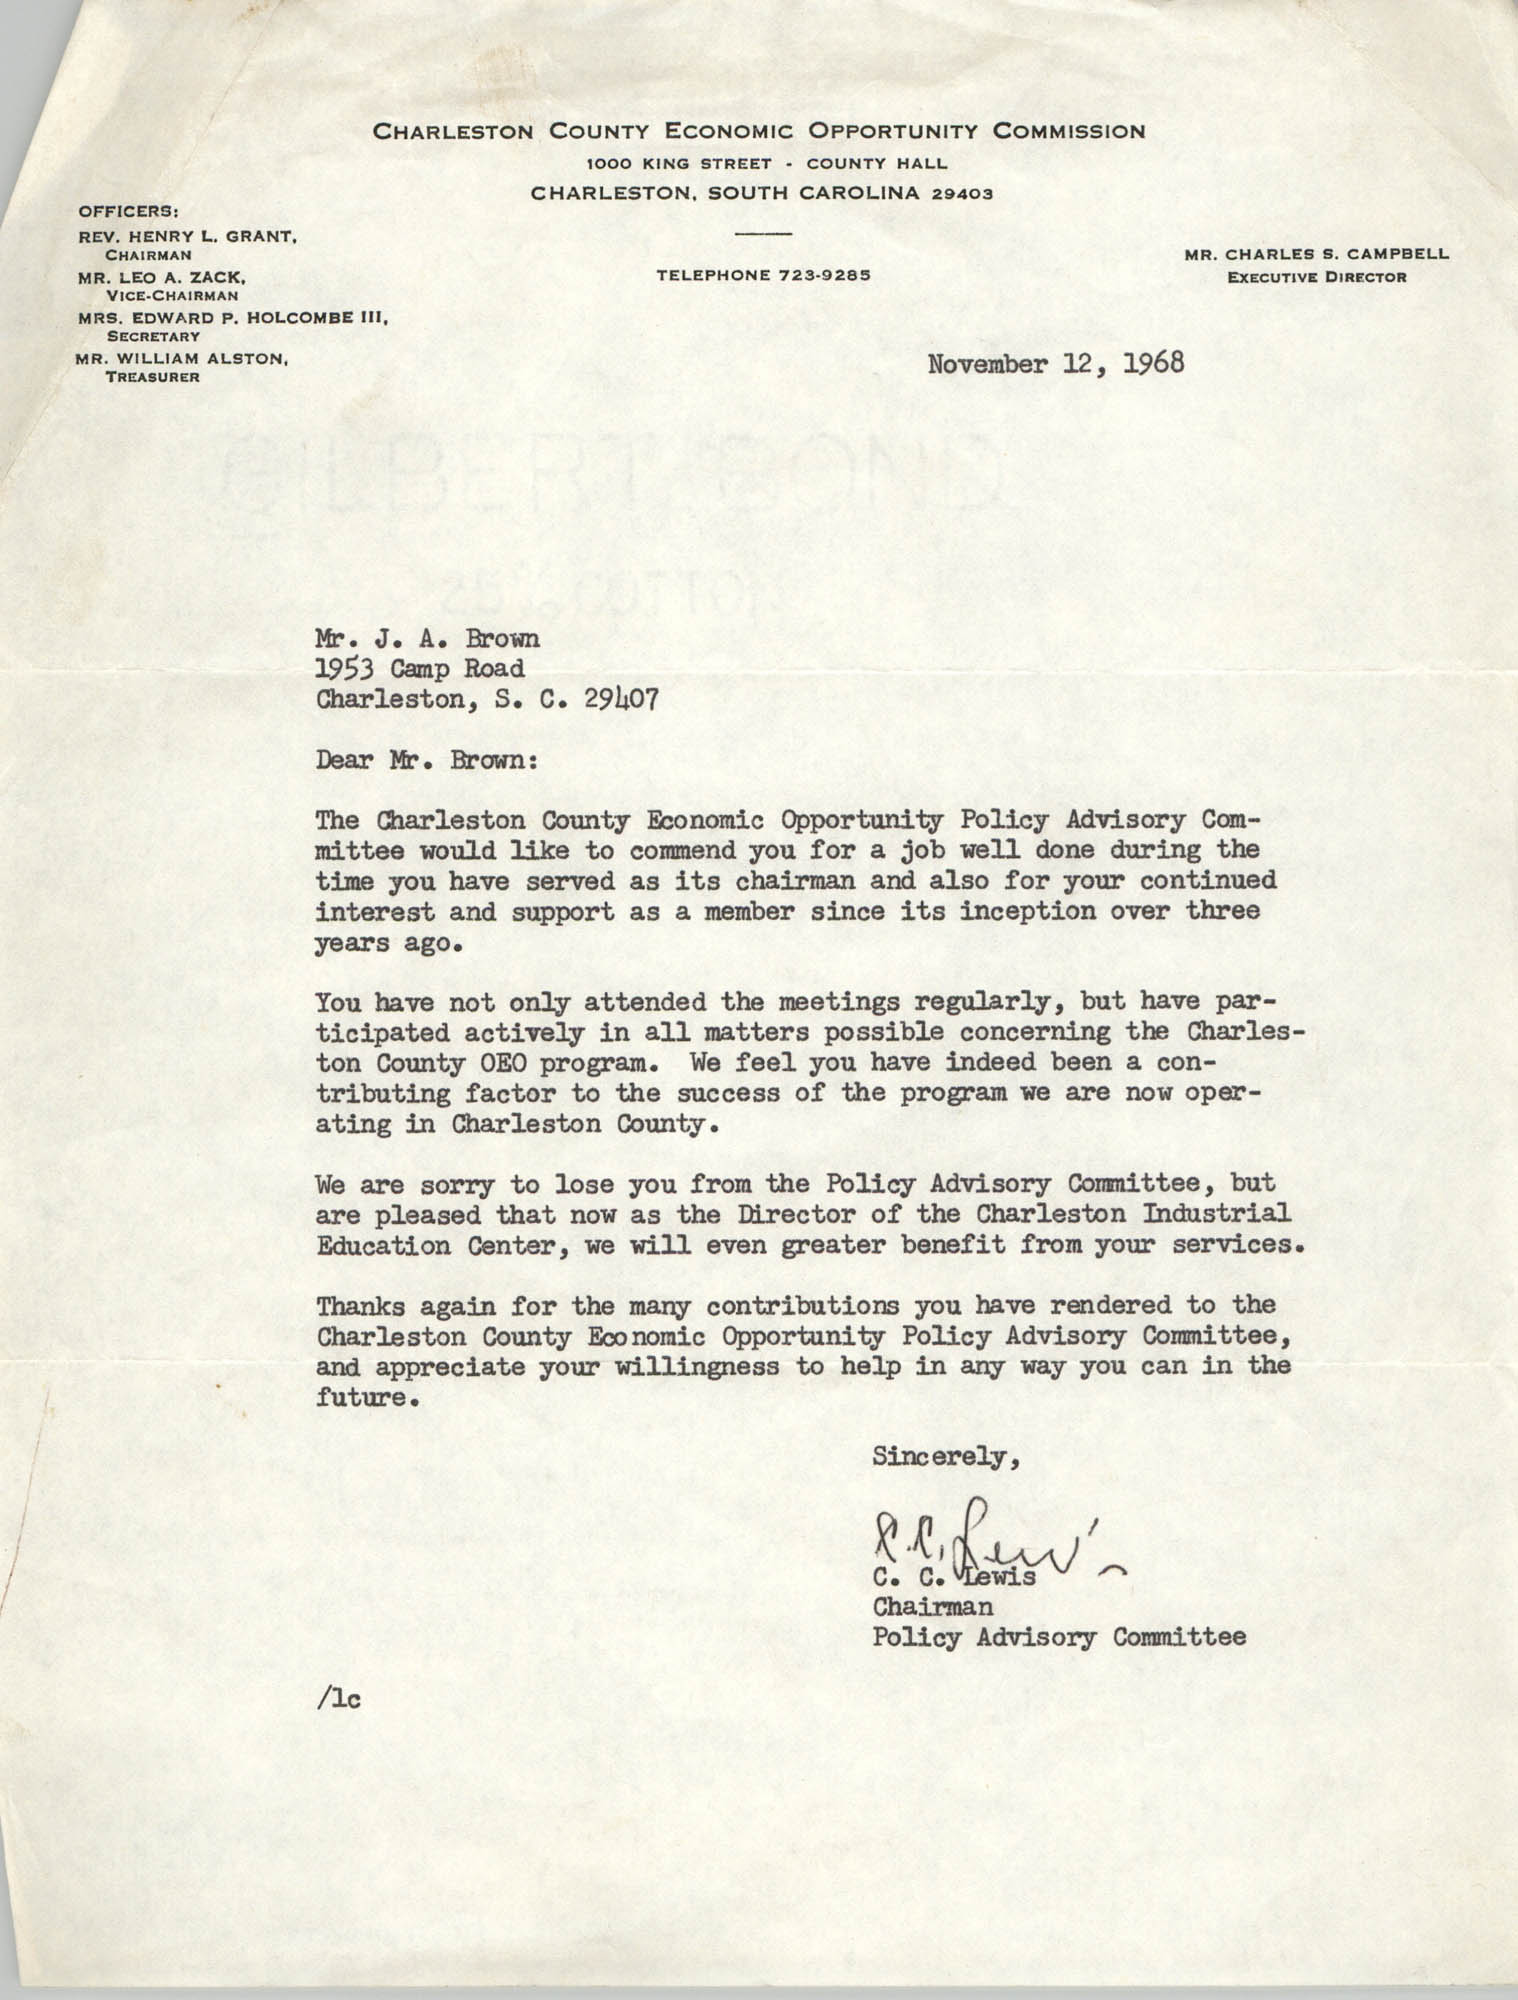 Letter from C. C. Lewis to J. Arthur Brown, November 12, 1968